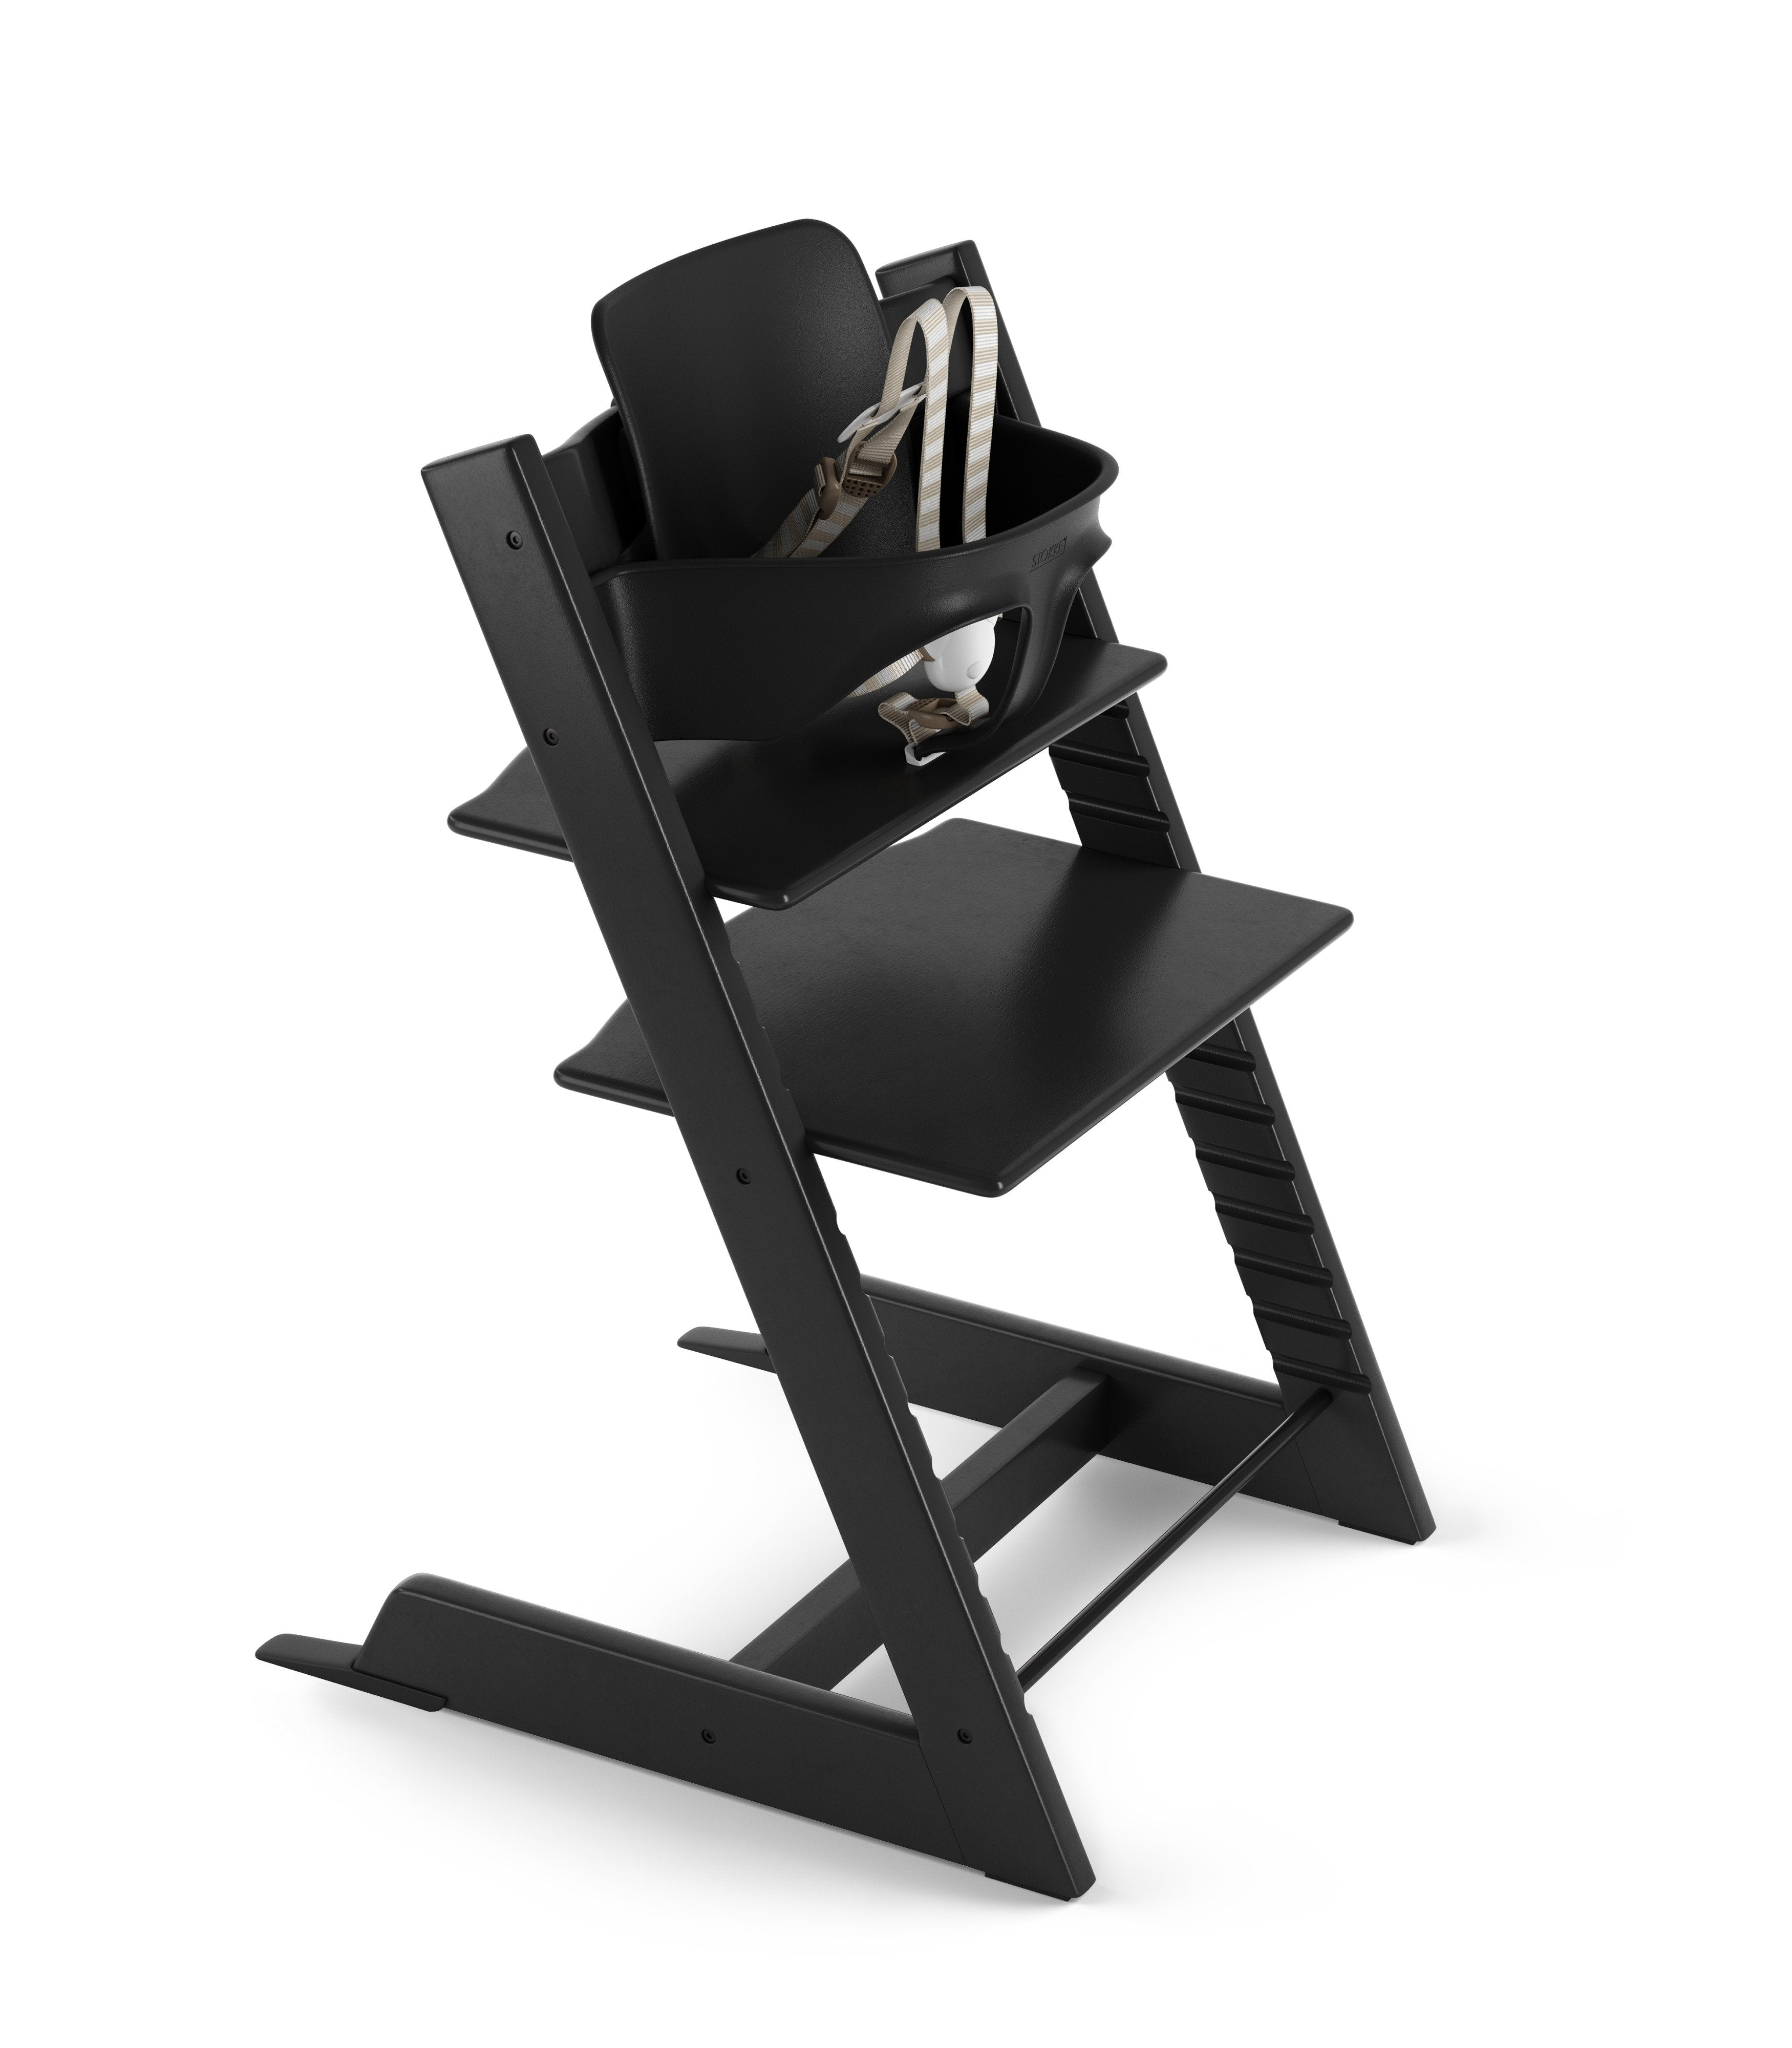 Load image into Gallery viewer, tripp trapp high chair black